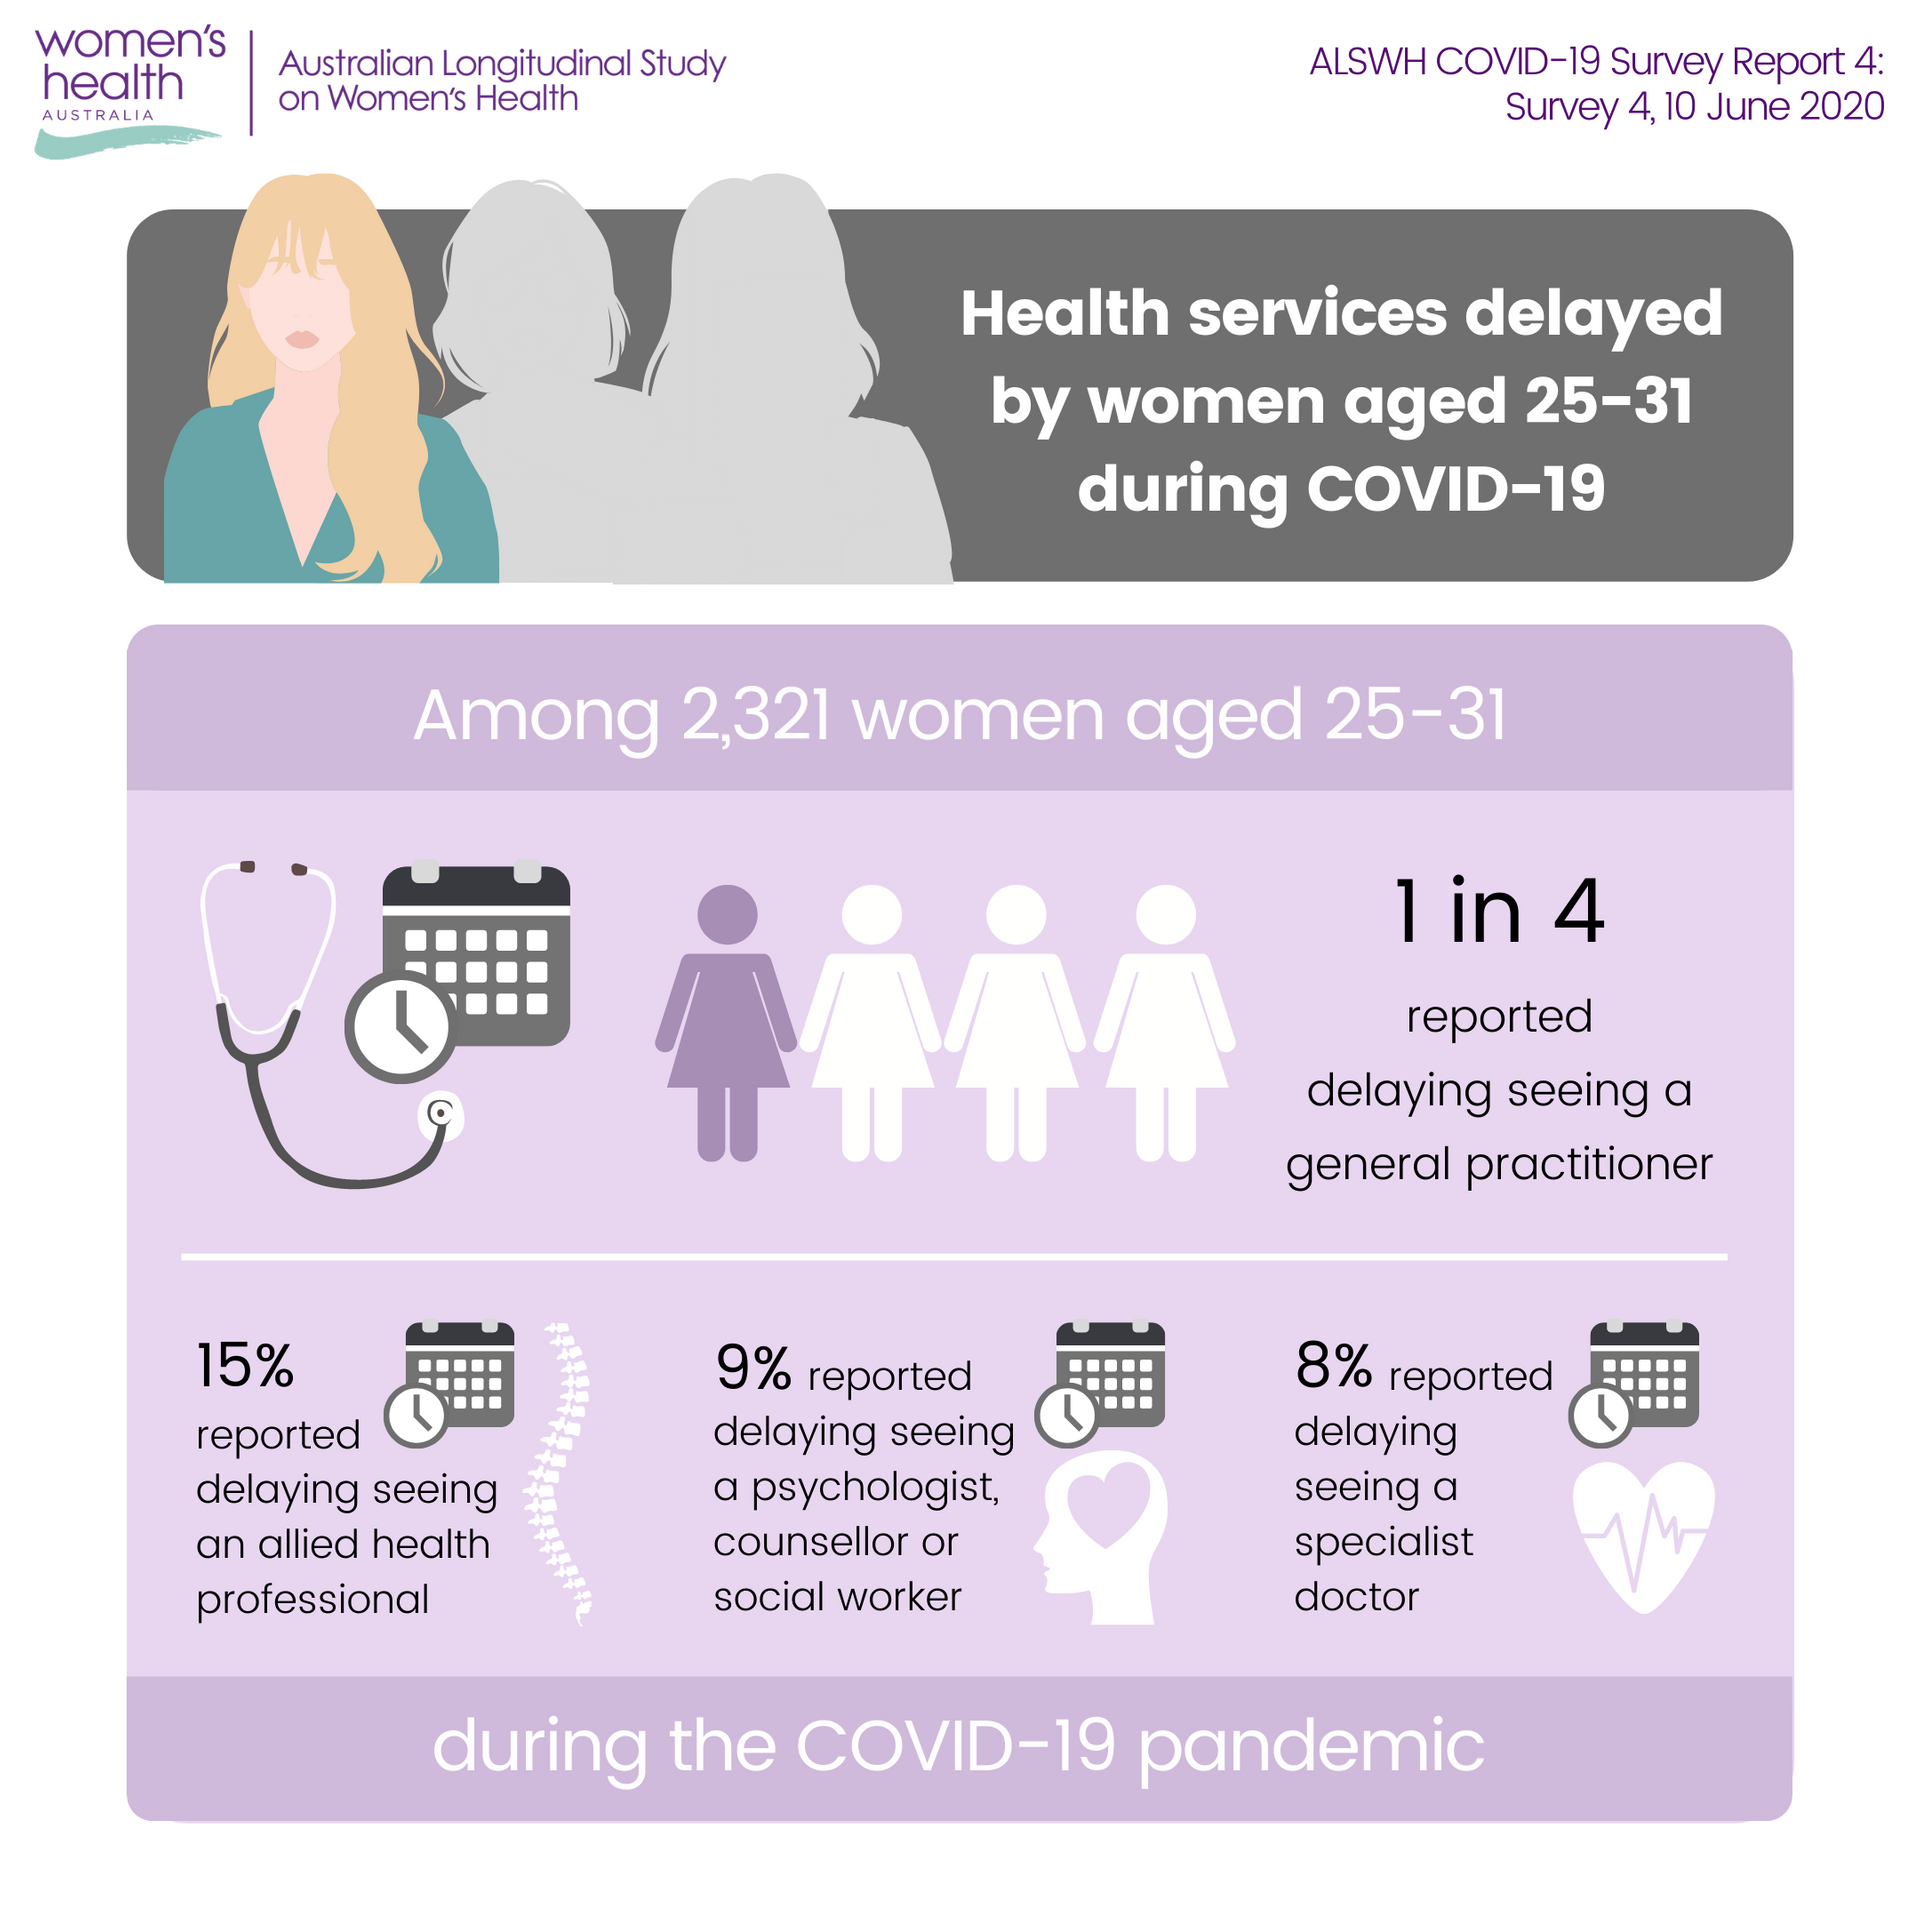 Infographic for ALSWH COVID-19 Survey 4 - 1 in 4 women aged 25-31 delayed seeing a general practitioner